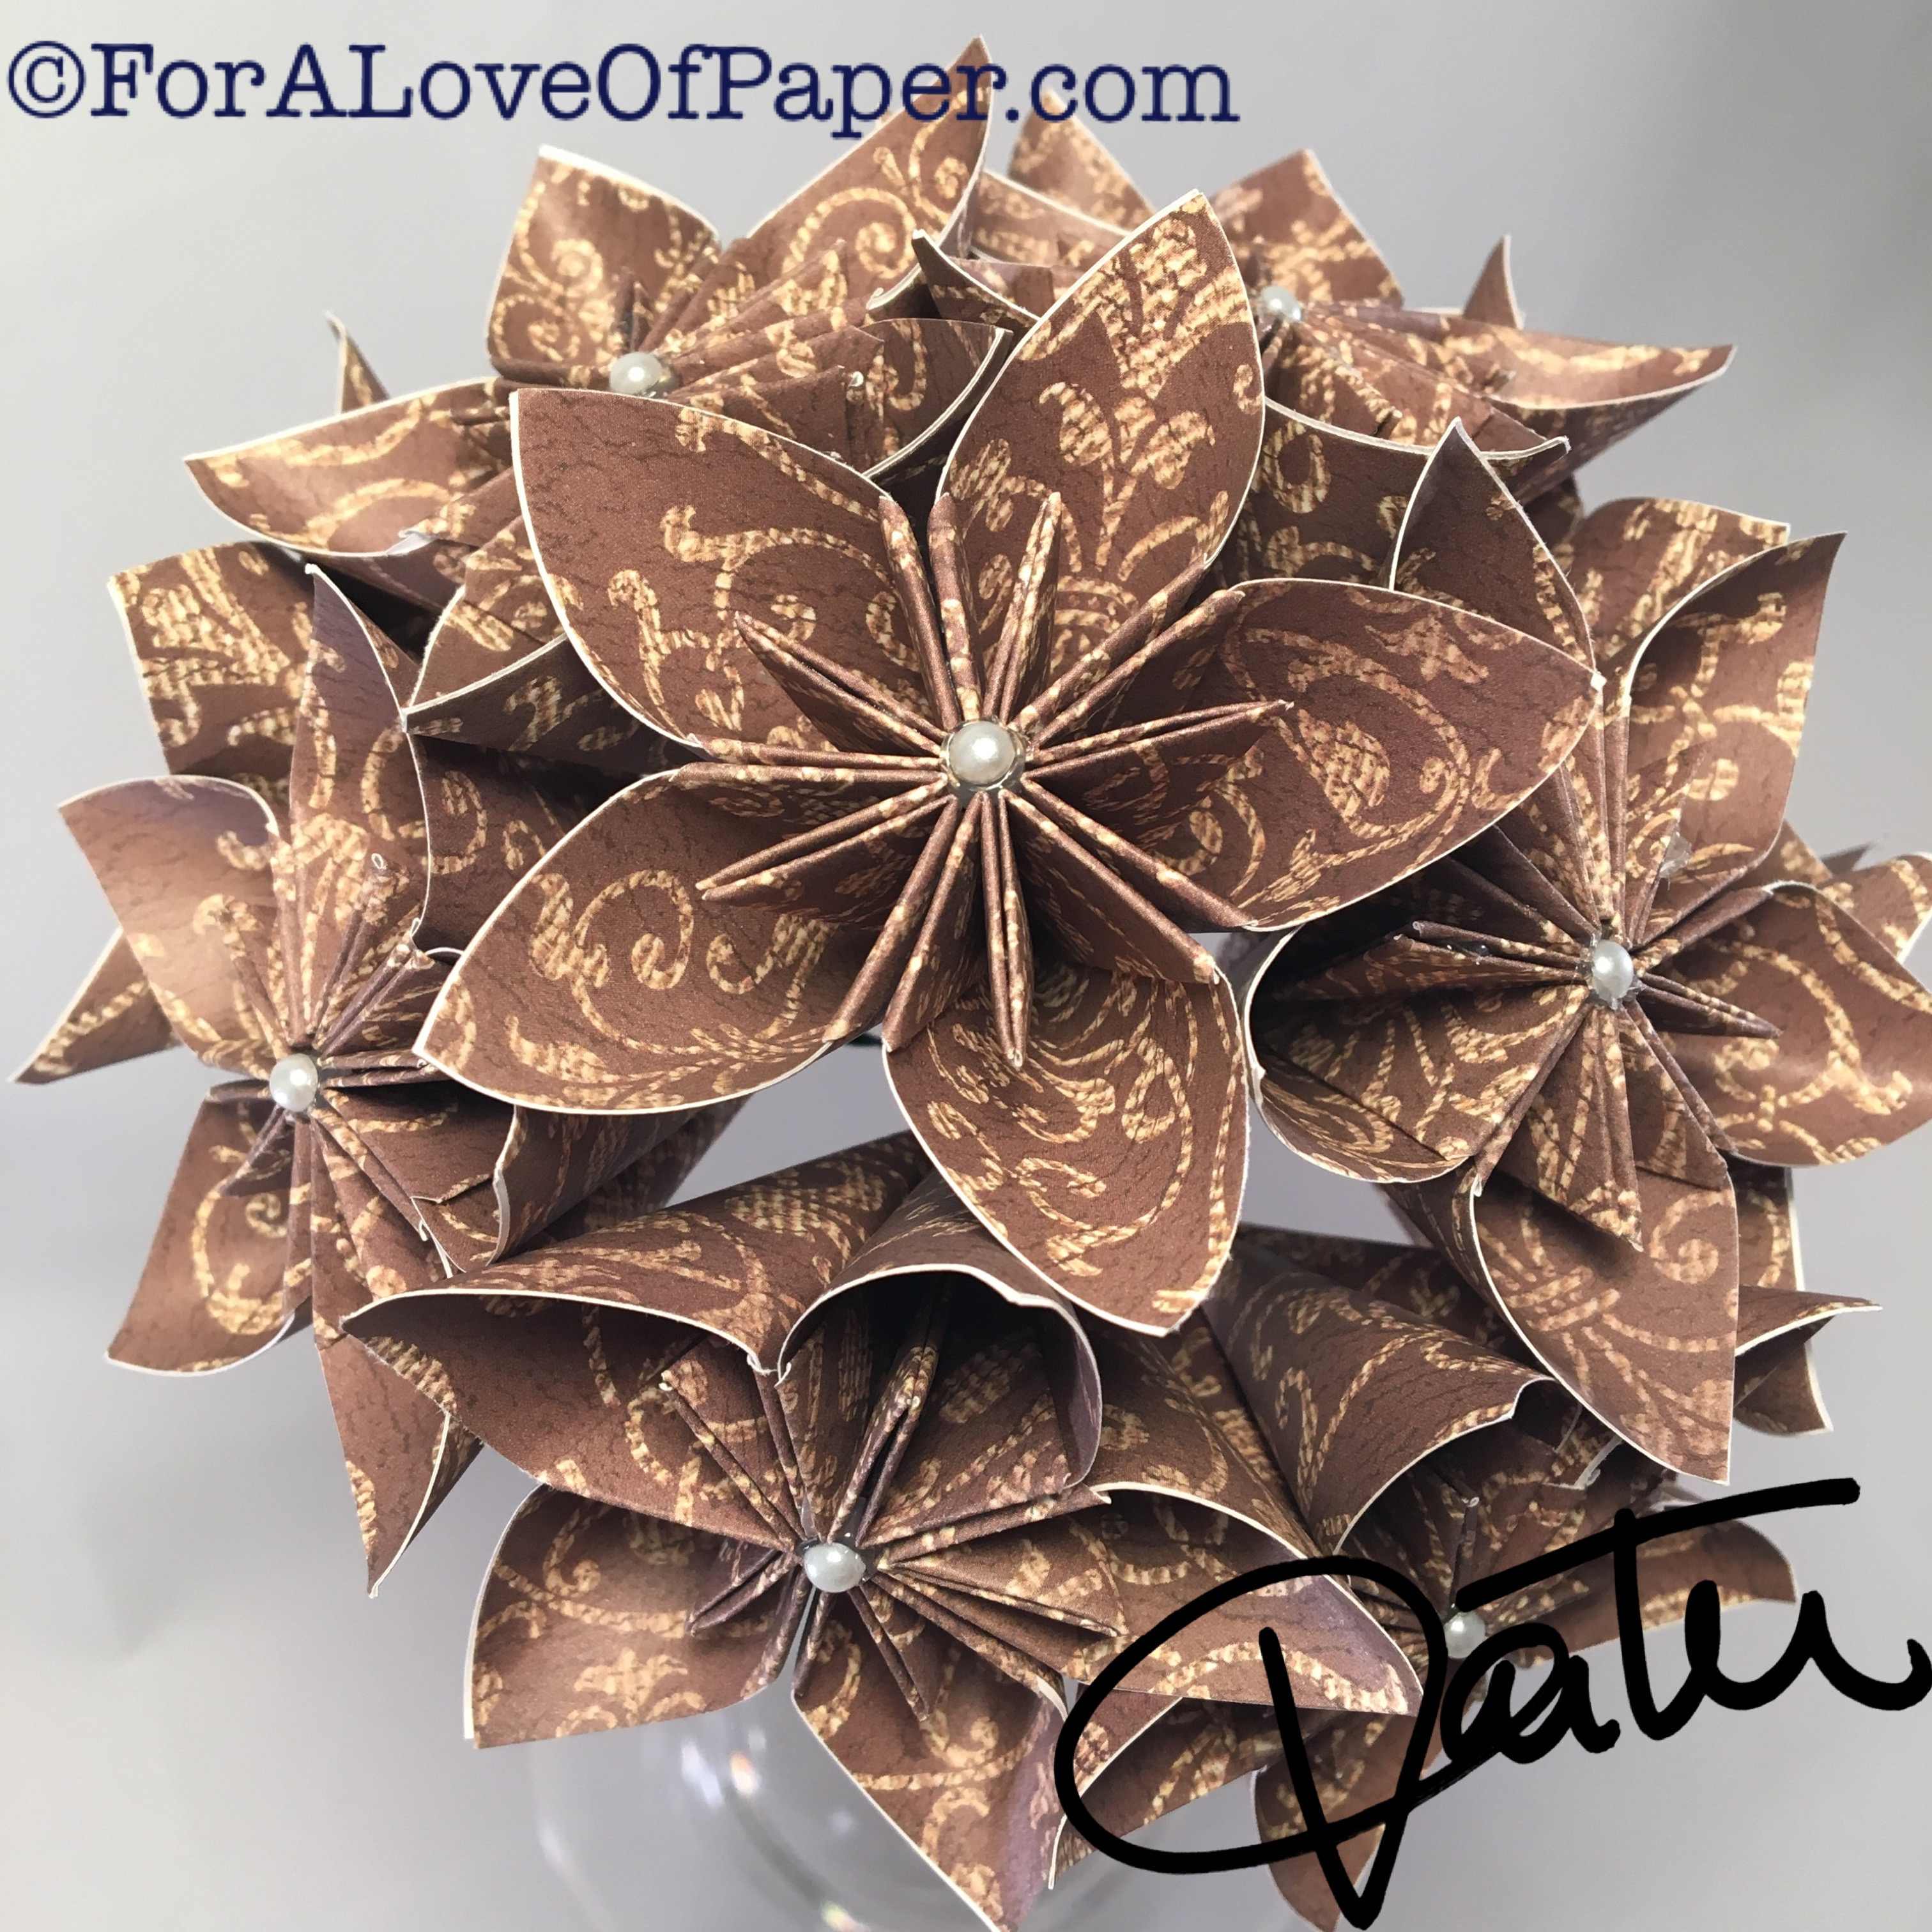 Paper flower bouquet made from mocha colored paper with decorative pattern